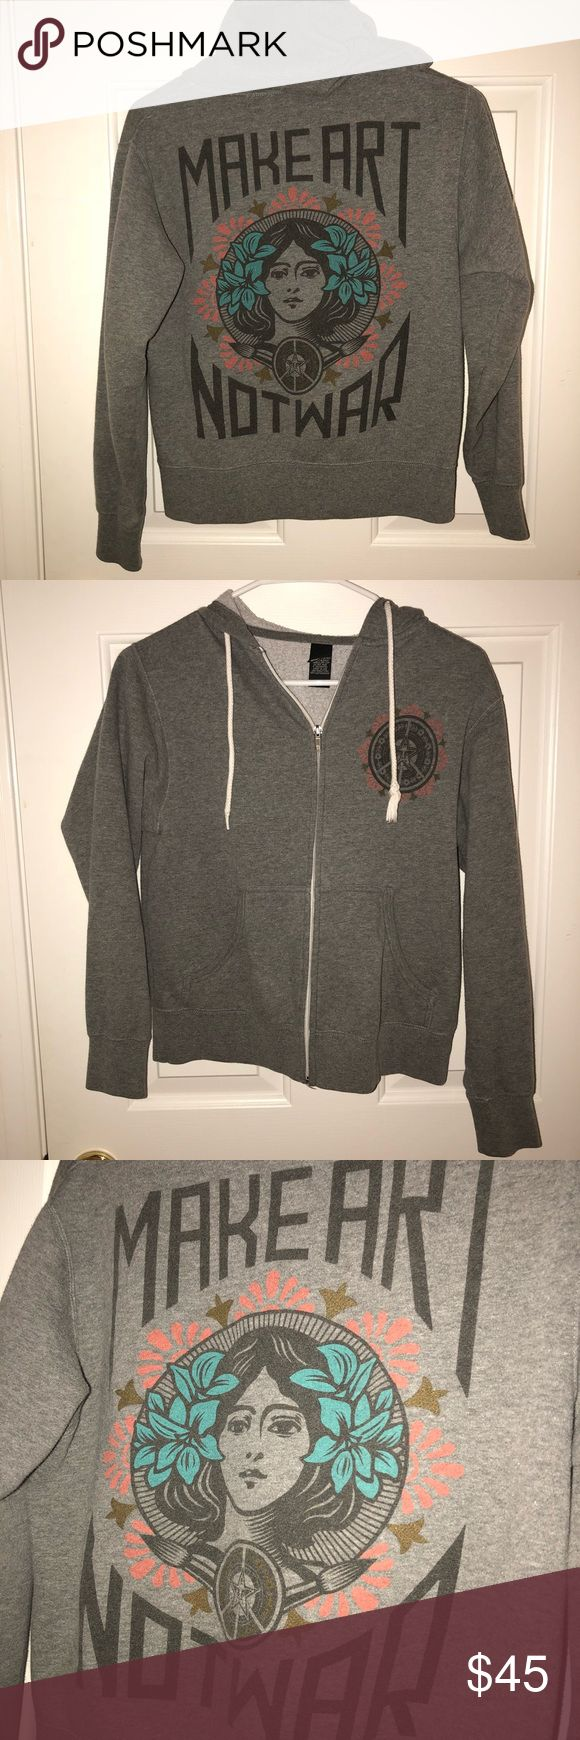 Obey Make Art Not War Grey Zip Up Hoodie Obey Make Art Not War Grey Zip Up Hoodie.  OG version, hard to find! Size small. Fits XS-S.  Only flaw is the aglet came off on the left string. Luckily, these strings can be easily replaced! :) Obey Jackets & Coats